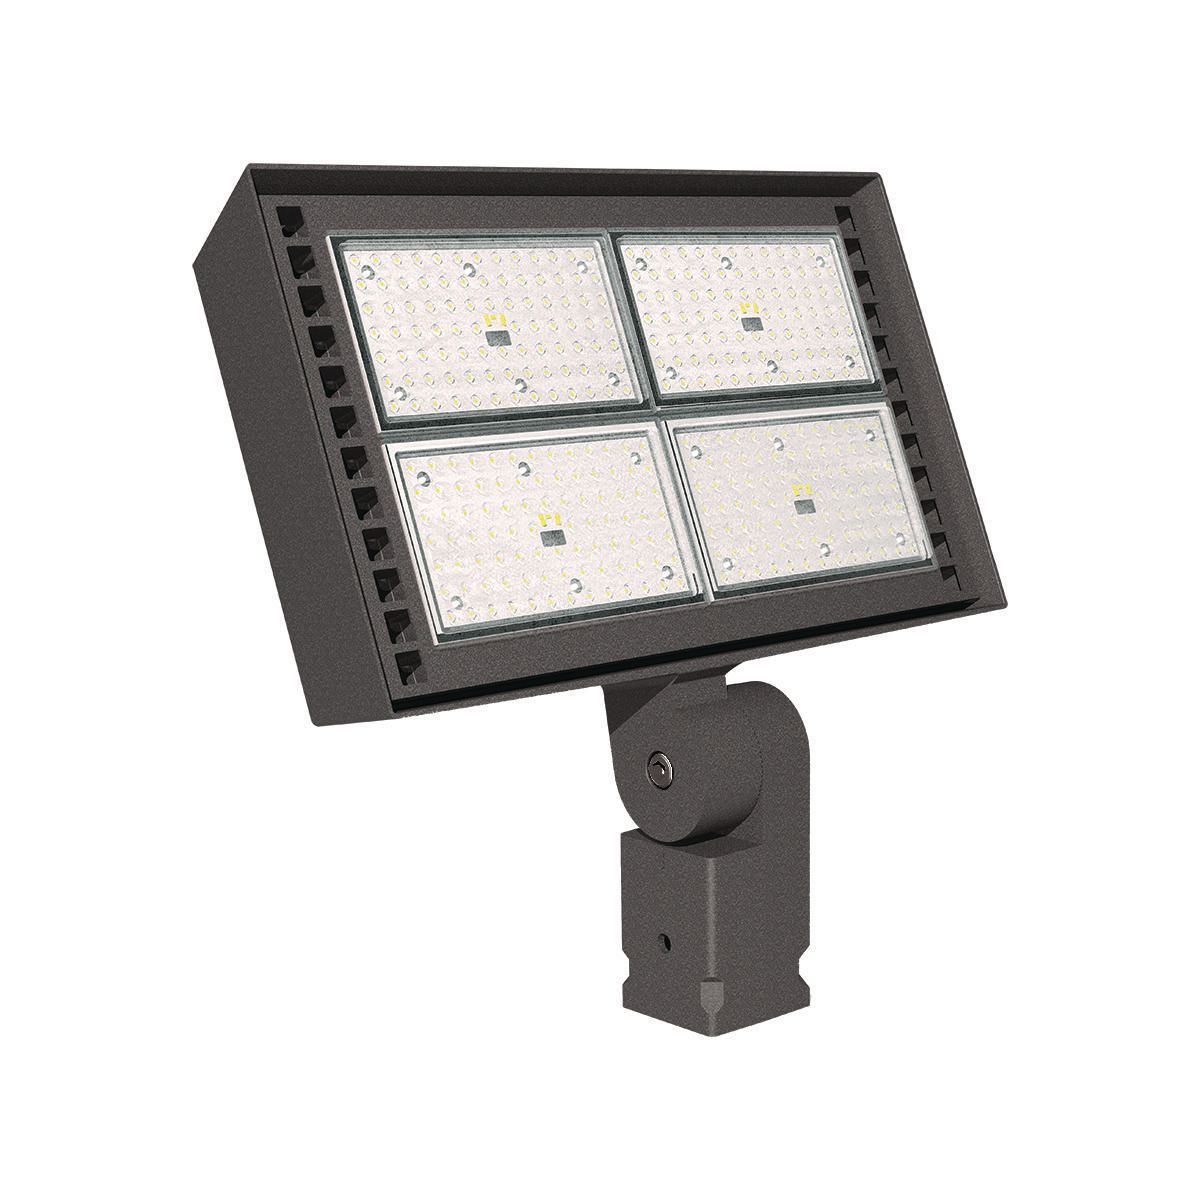 Rfl5 Ratio Floodlight Hubbell Outdoor